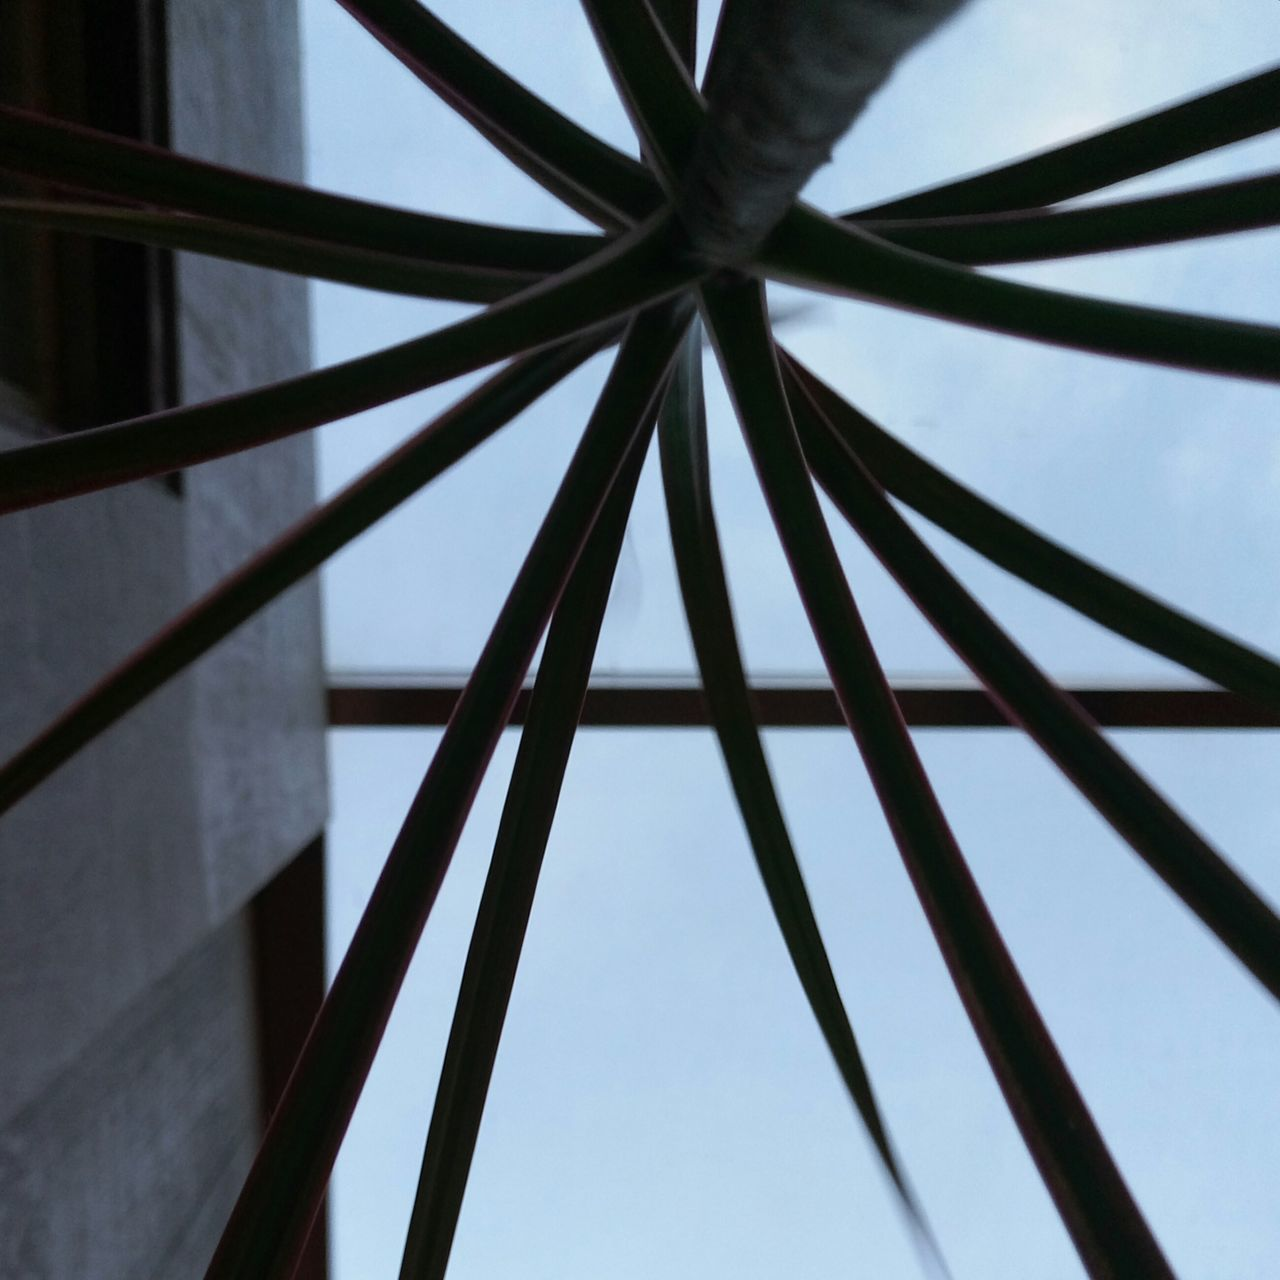 low angle view, day, pattern, no people, built structure, architecture, outdoors, close-up, sky